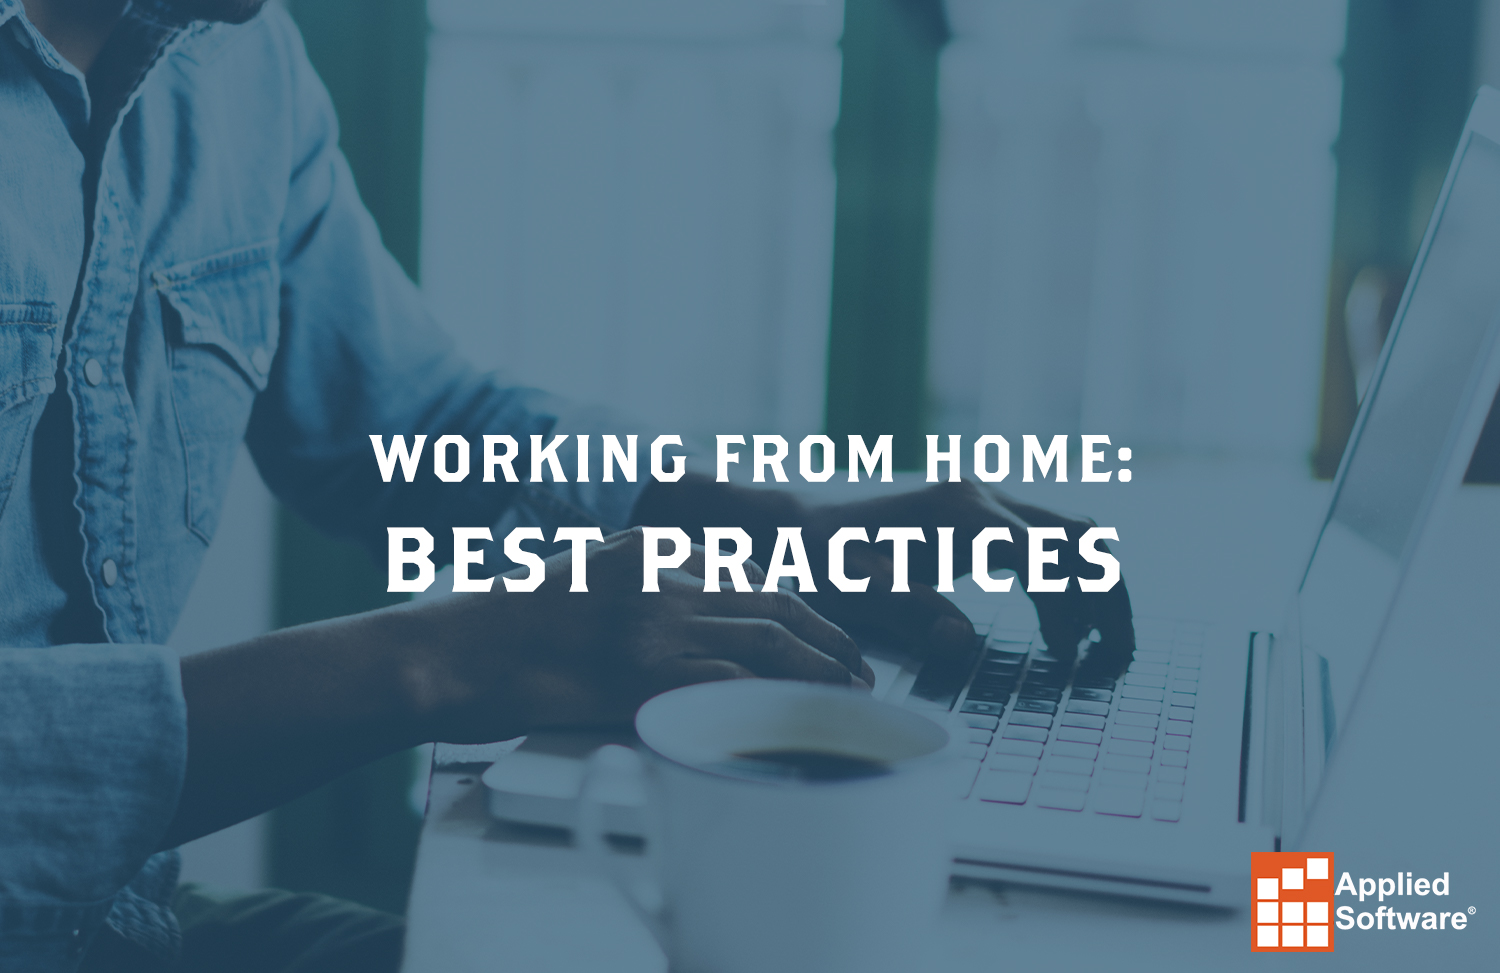 Working from home, best practices